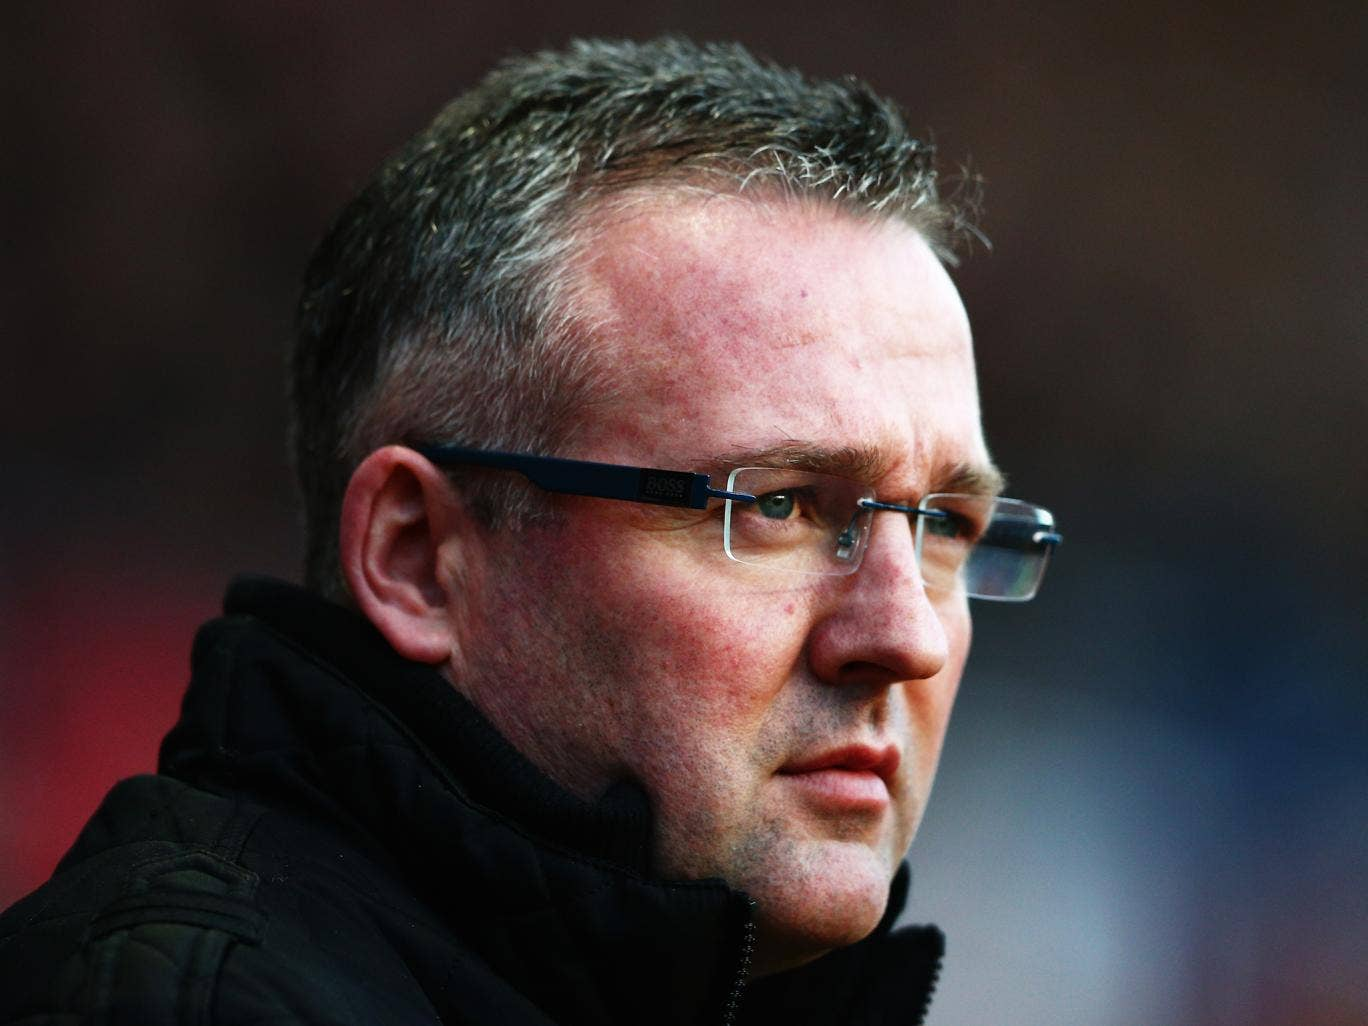 Paul Lambert says he still has confidence in his players despite a fourth straight defeat which saw them get booed off after the 1-0 defeat to Crystal Palace